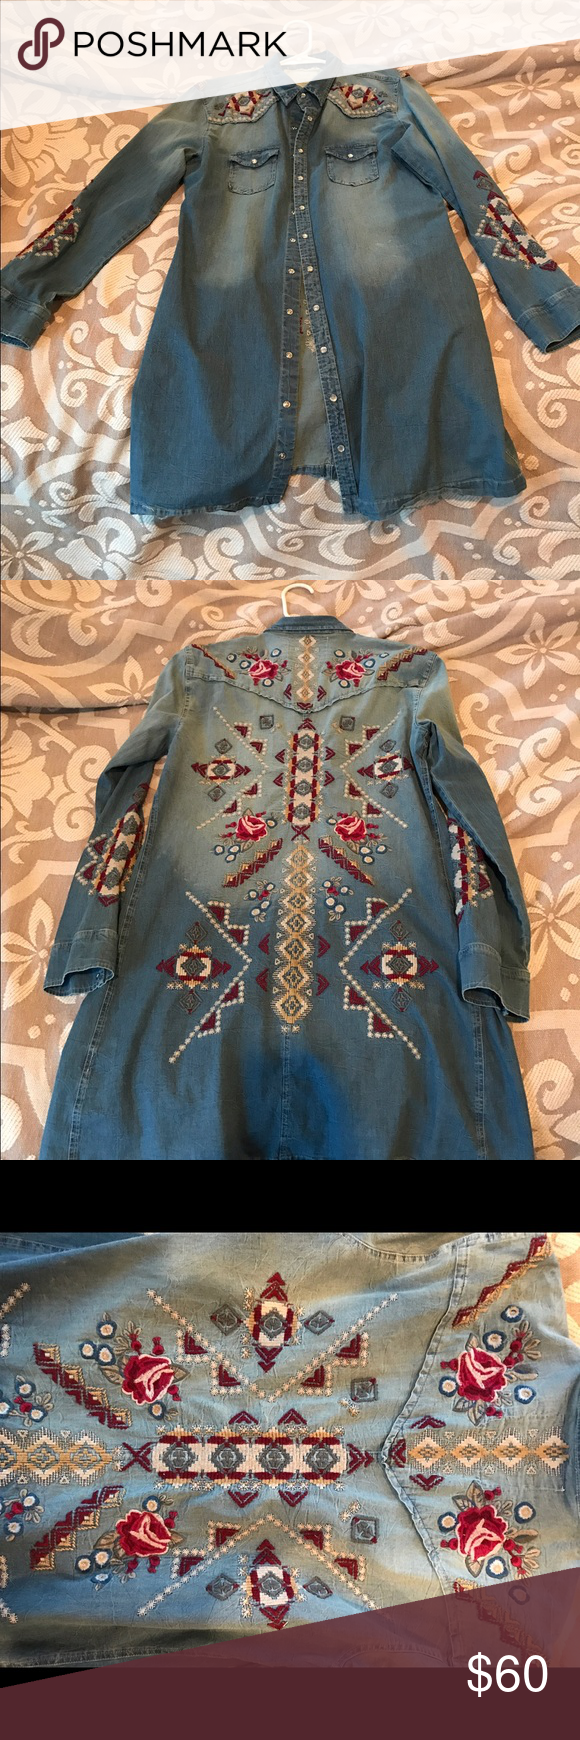 Johnny Was Denim Embroidery Dress Johnny Was Demin Dress with a beautiful embroidered design!! Worn twice... no flaws (other than needs a good ironing at the hem!) If you have any questions, please don't hesitate to ask! Johnny Was Dresses Long Sleeve